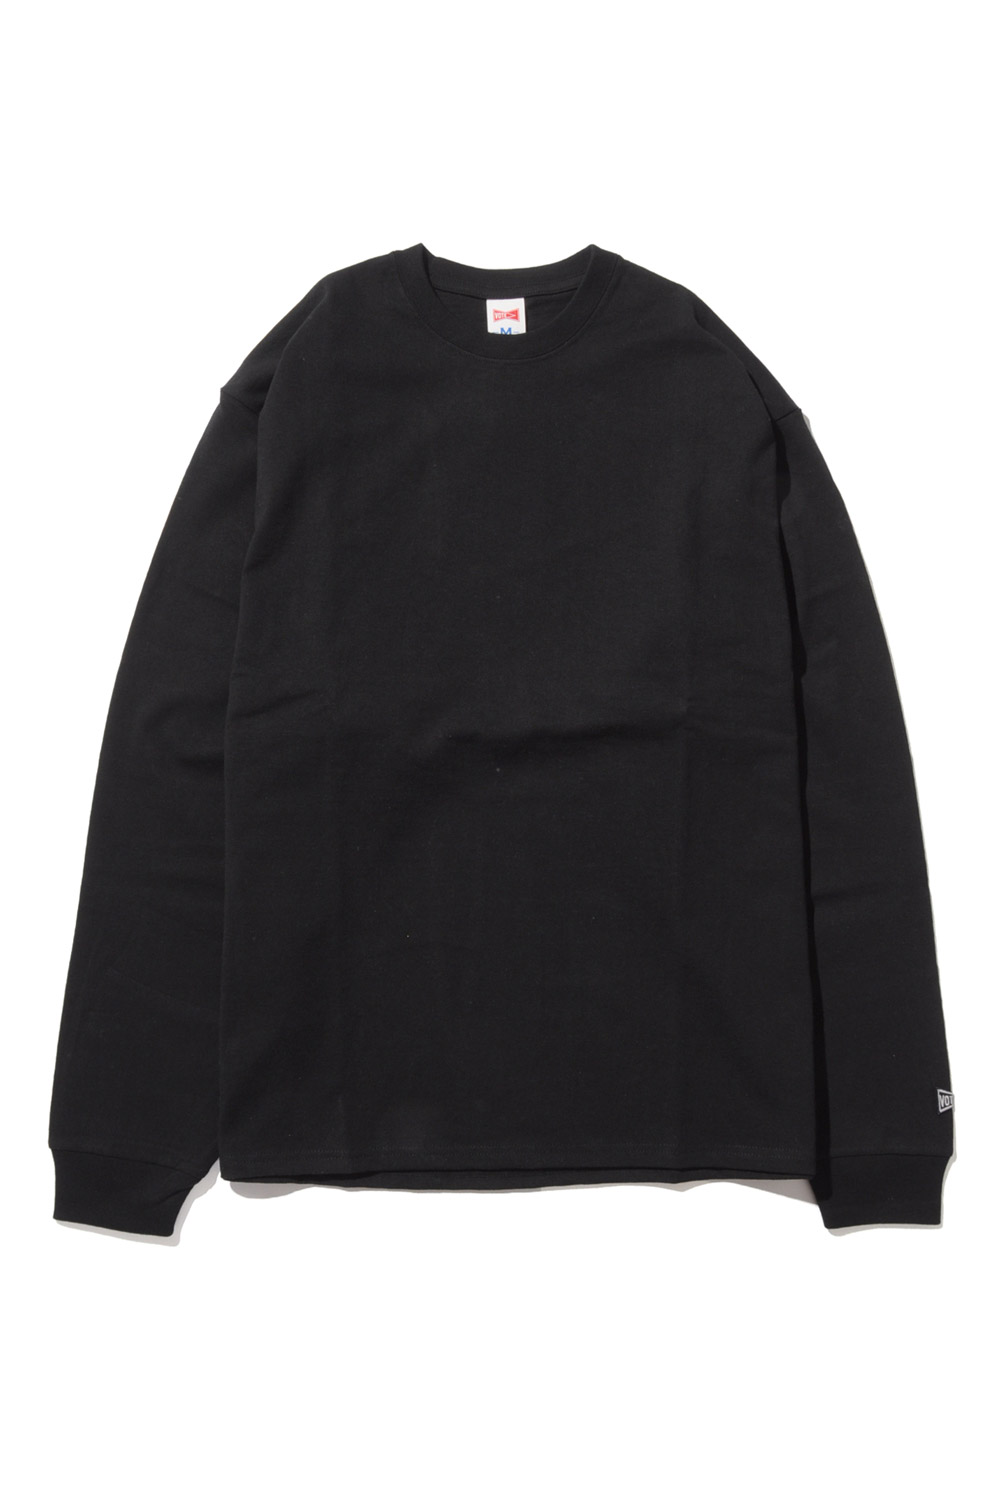 画像2: 【VOTE MAKE NEW CLOTHES】FAT L/S TEE